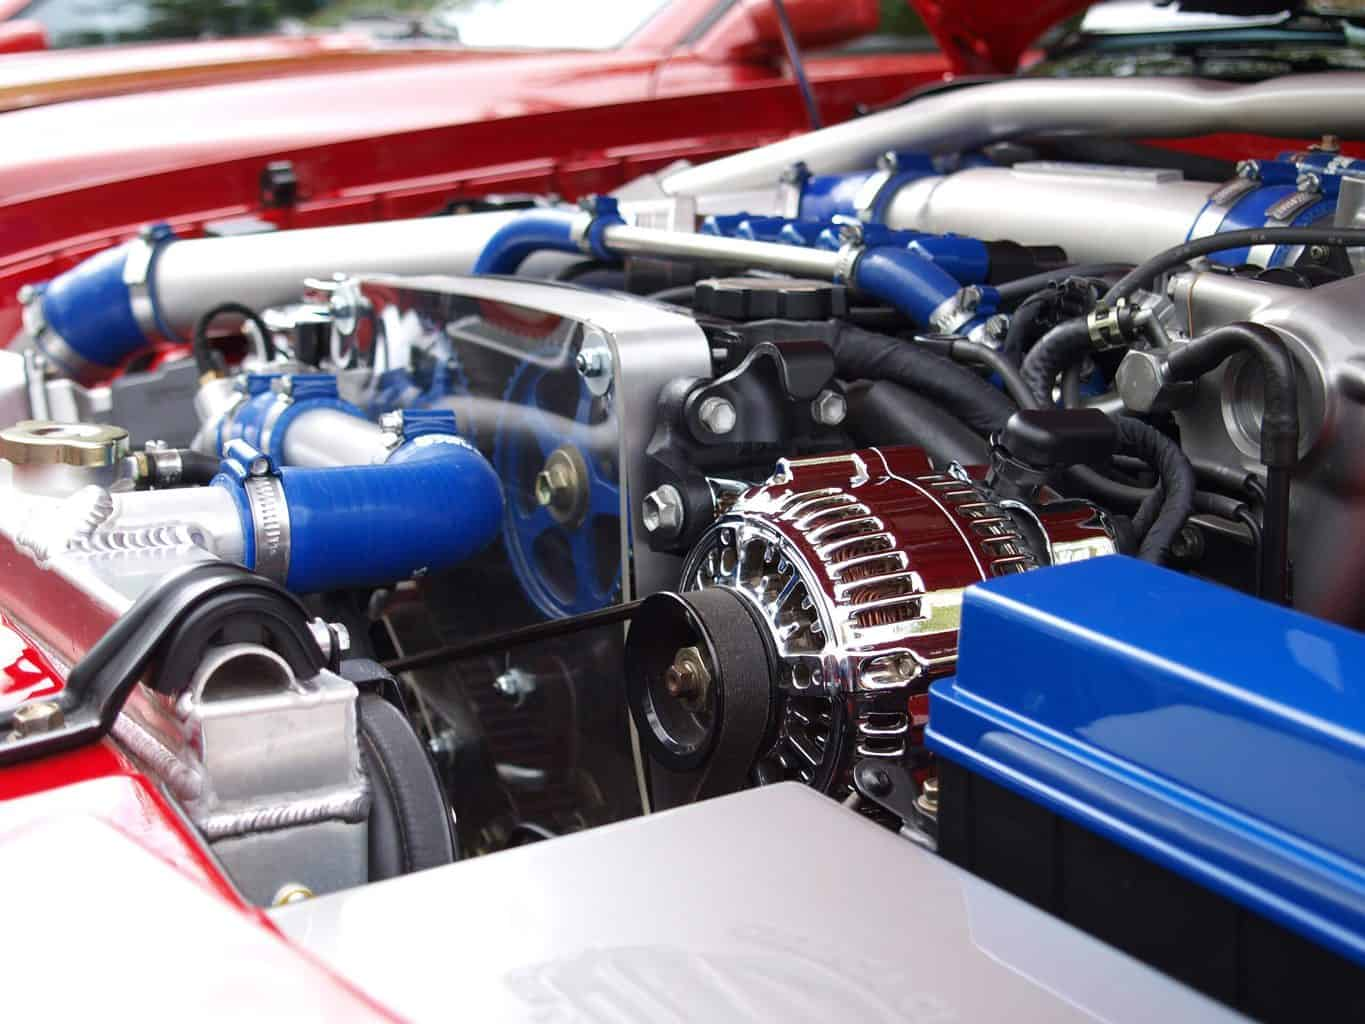 A car engine with blue toned pipes